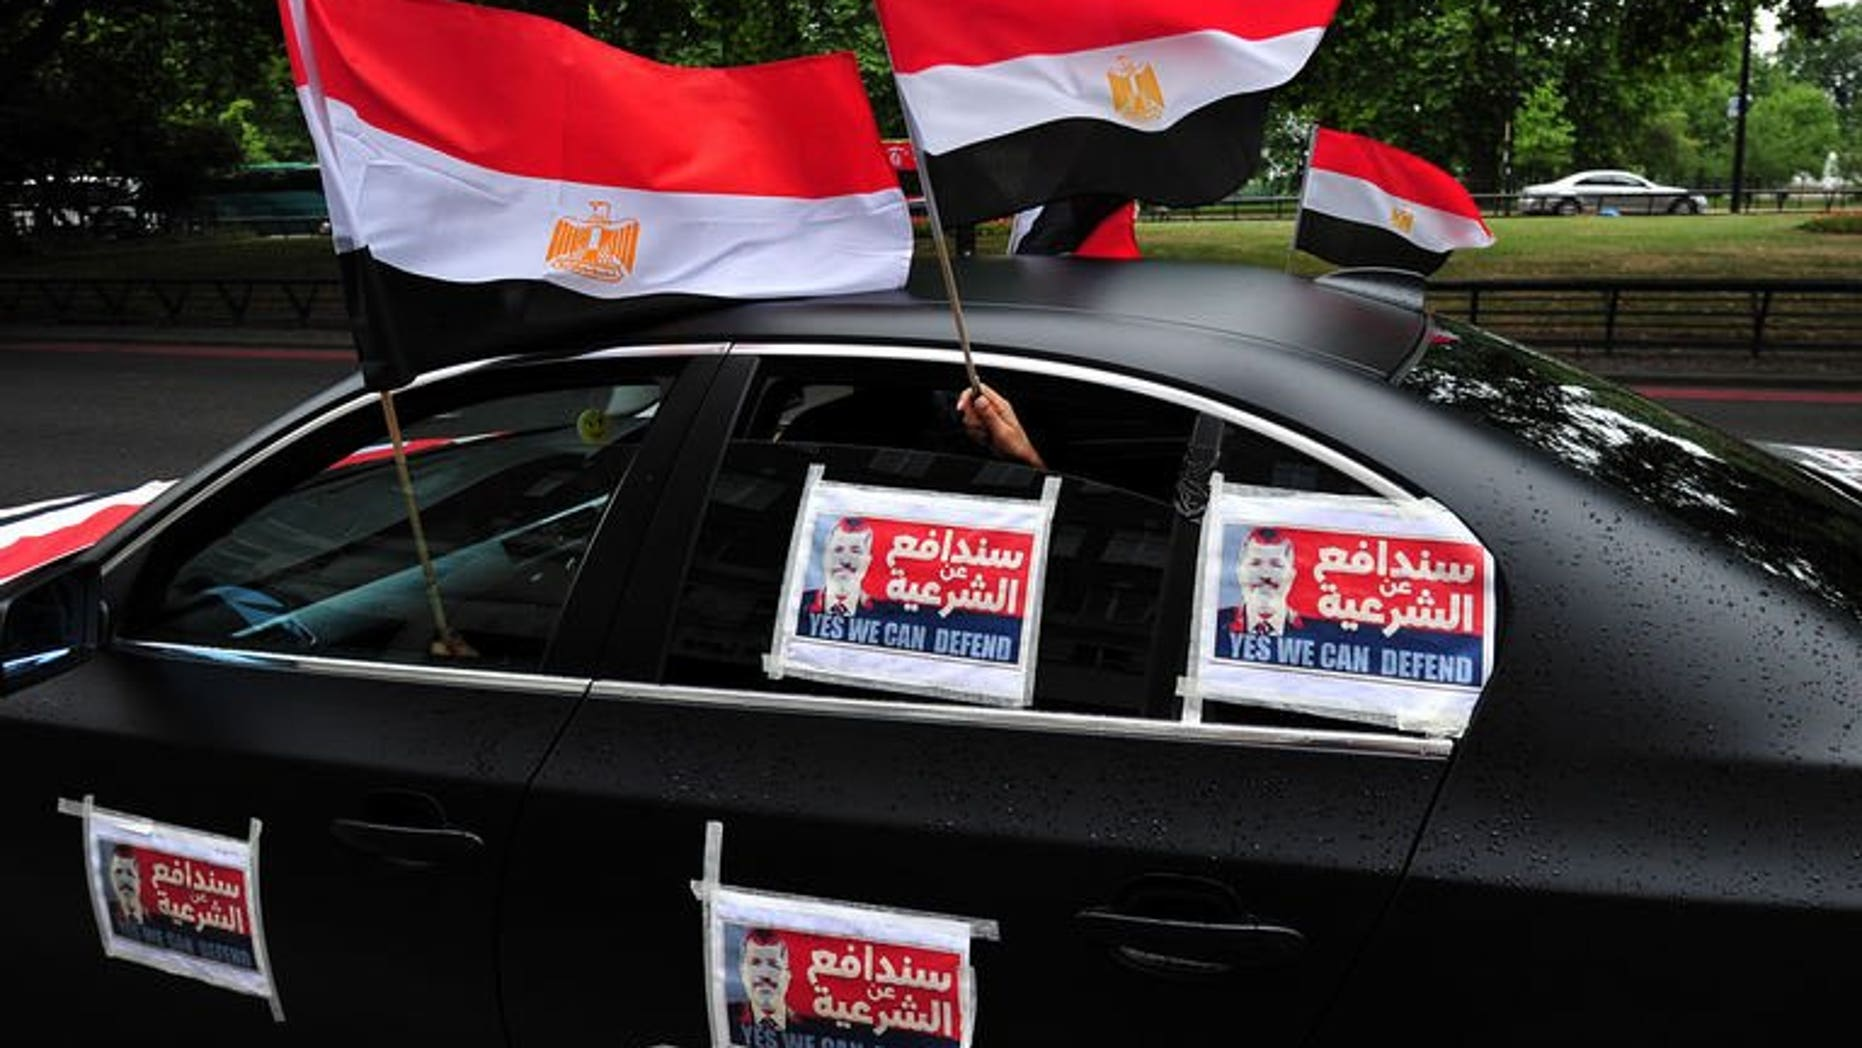 Demonstrators supporting Egypt's ousted Islamist president Mohamed Morsi hold Egyptian flags (L) from a car plastered with Morsi posters during a rally against the crackdown on protesters in Egypt in central London on August 17, 2013.